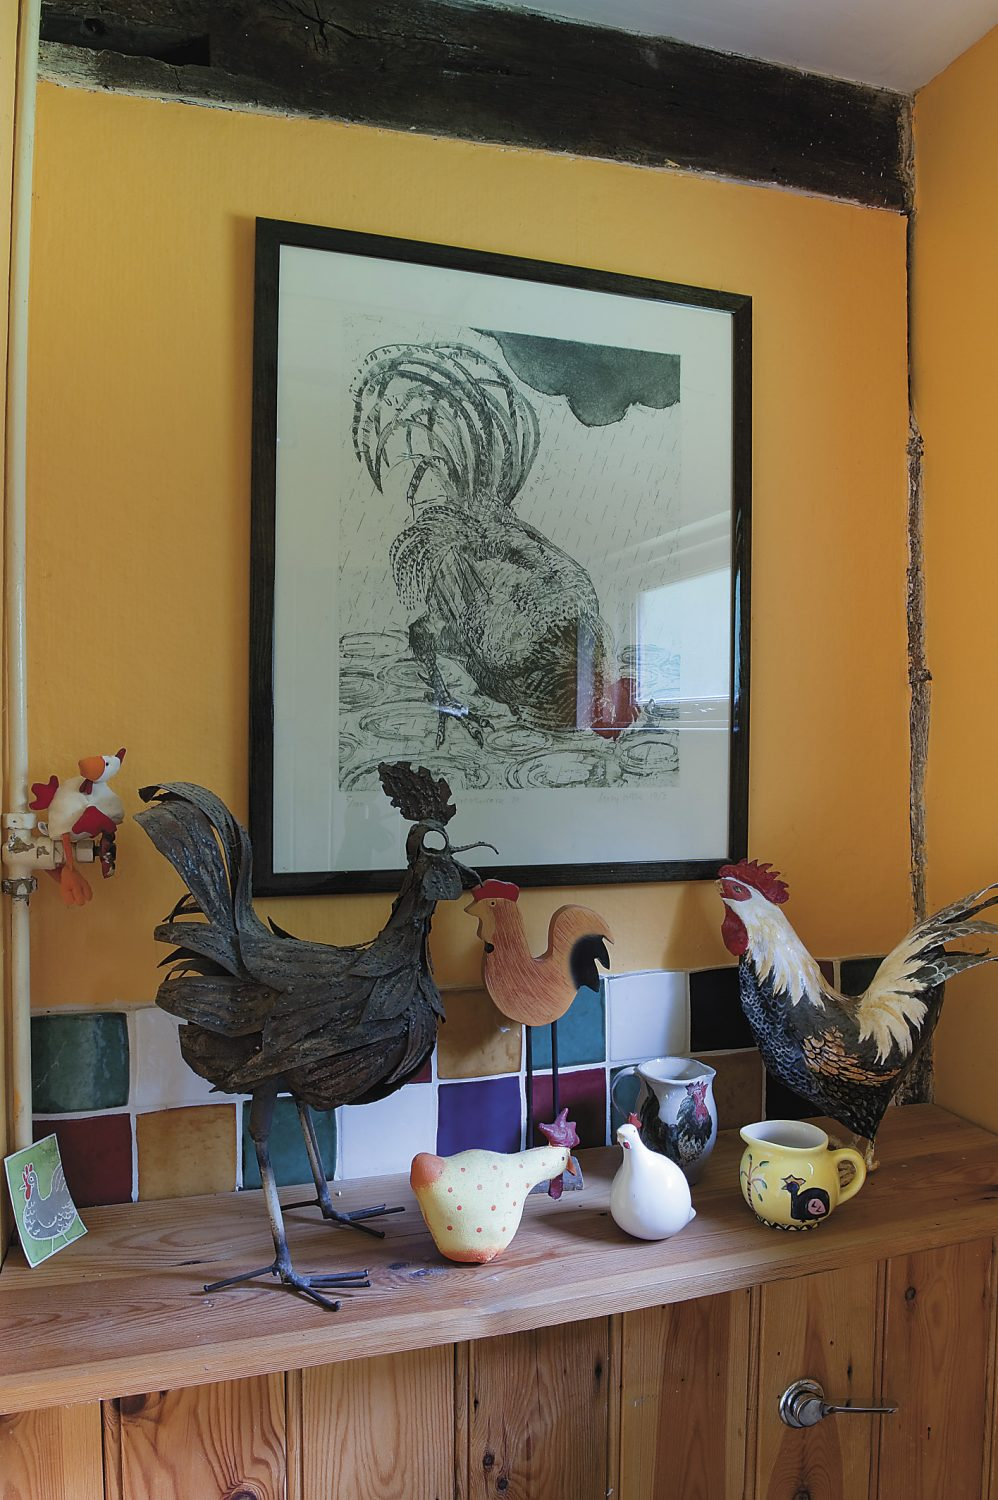 design happens. One chicken turned to two, then to three. The downstairs cloakroom is now known as the 'chicken loo'!